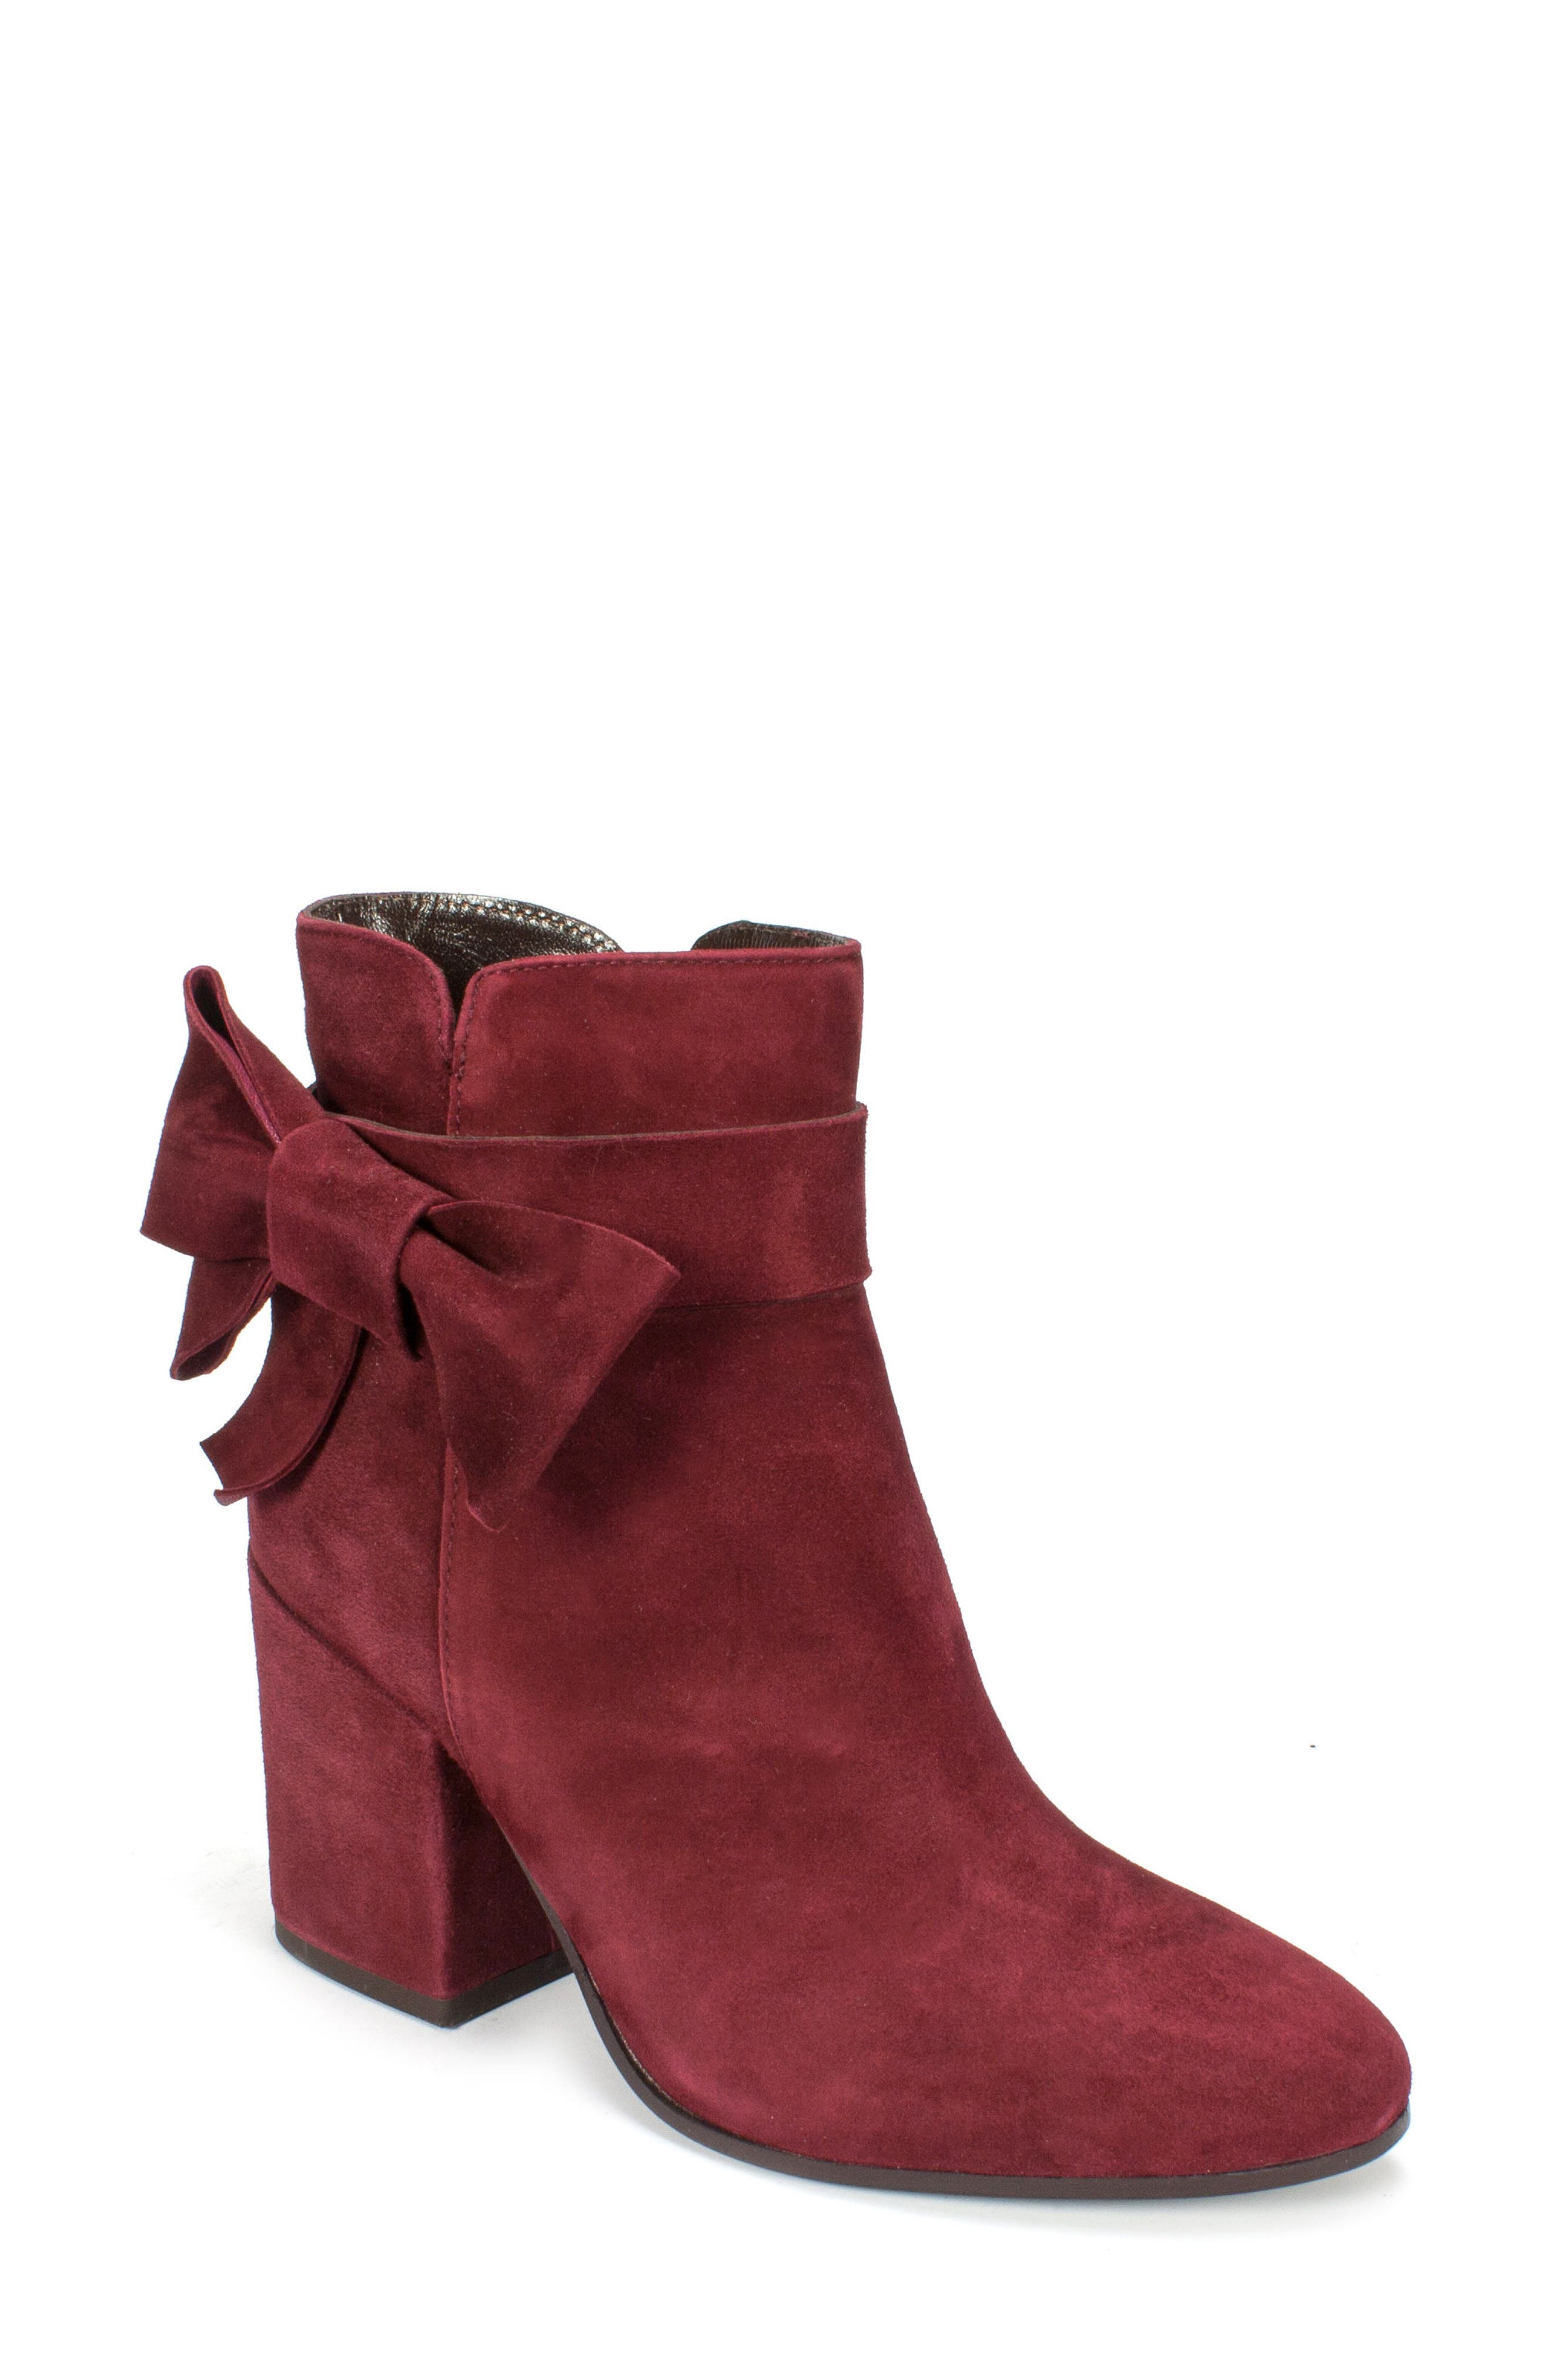 Stevie Bootie,                             Main thumbnail 1, color,                             Burgundy Suede